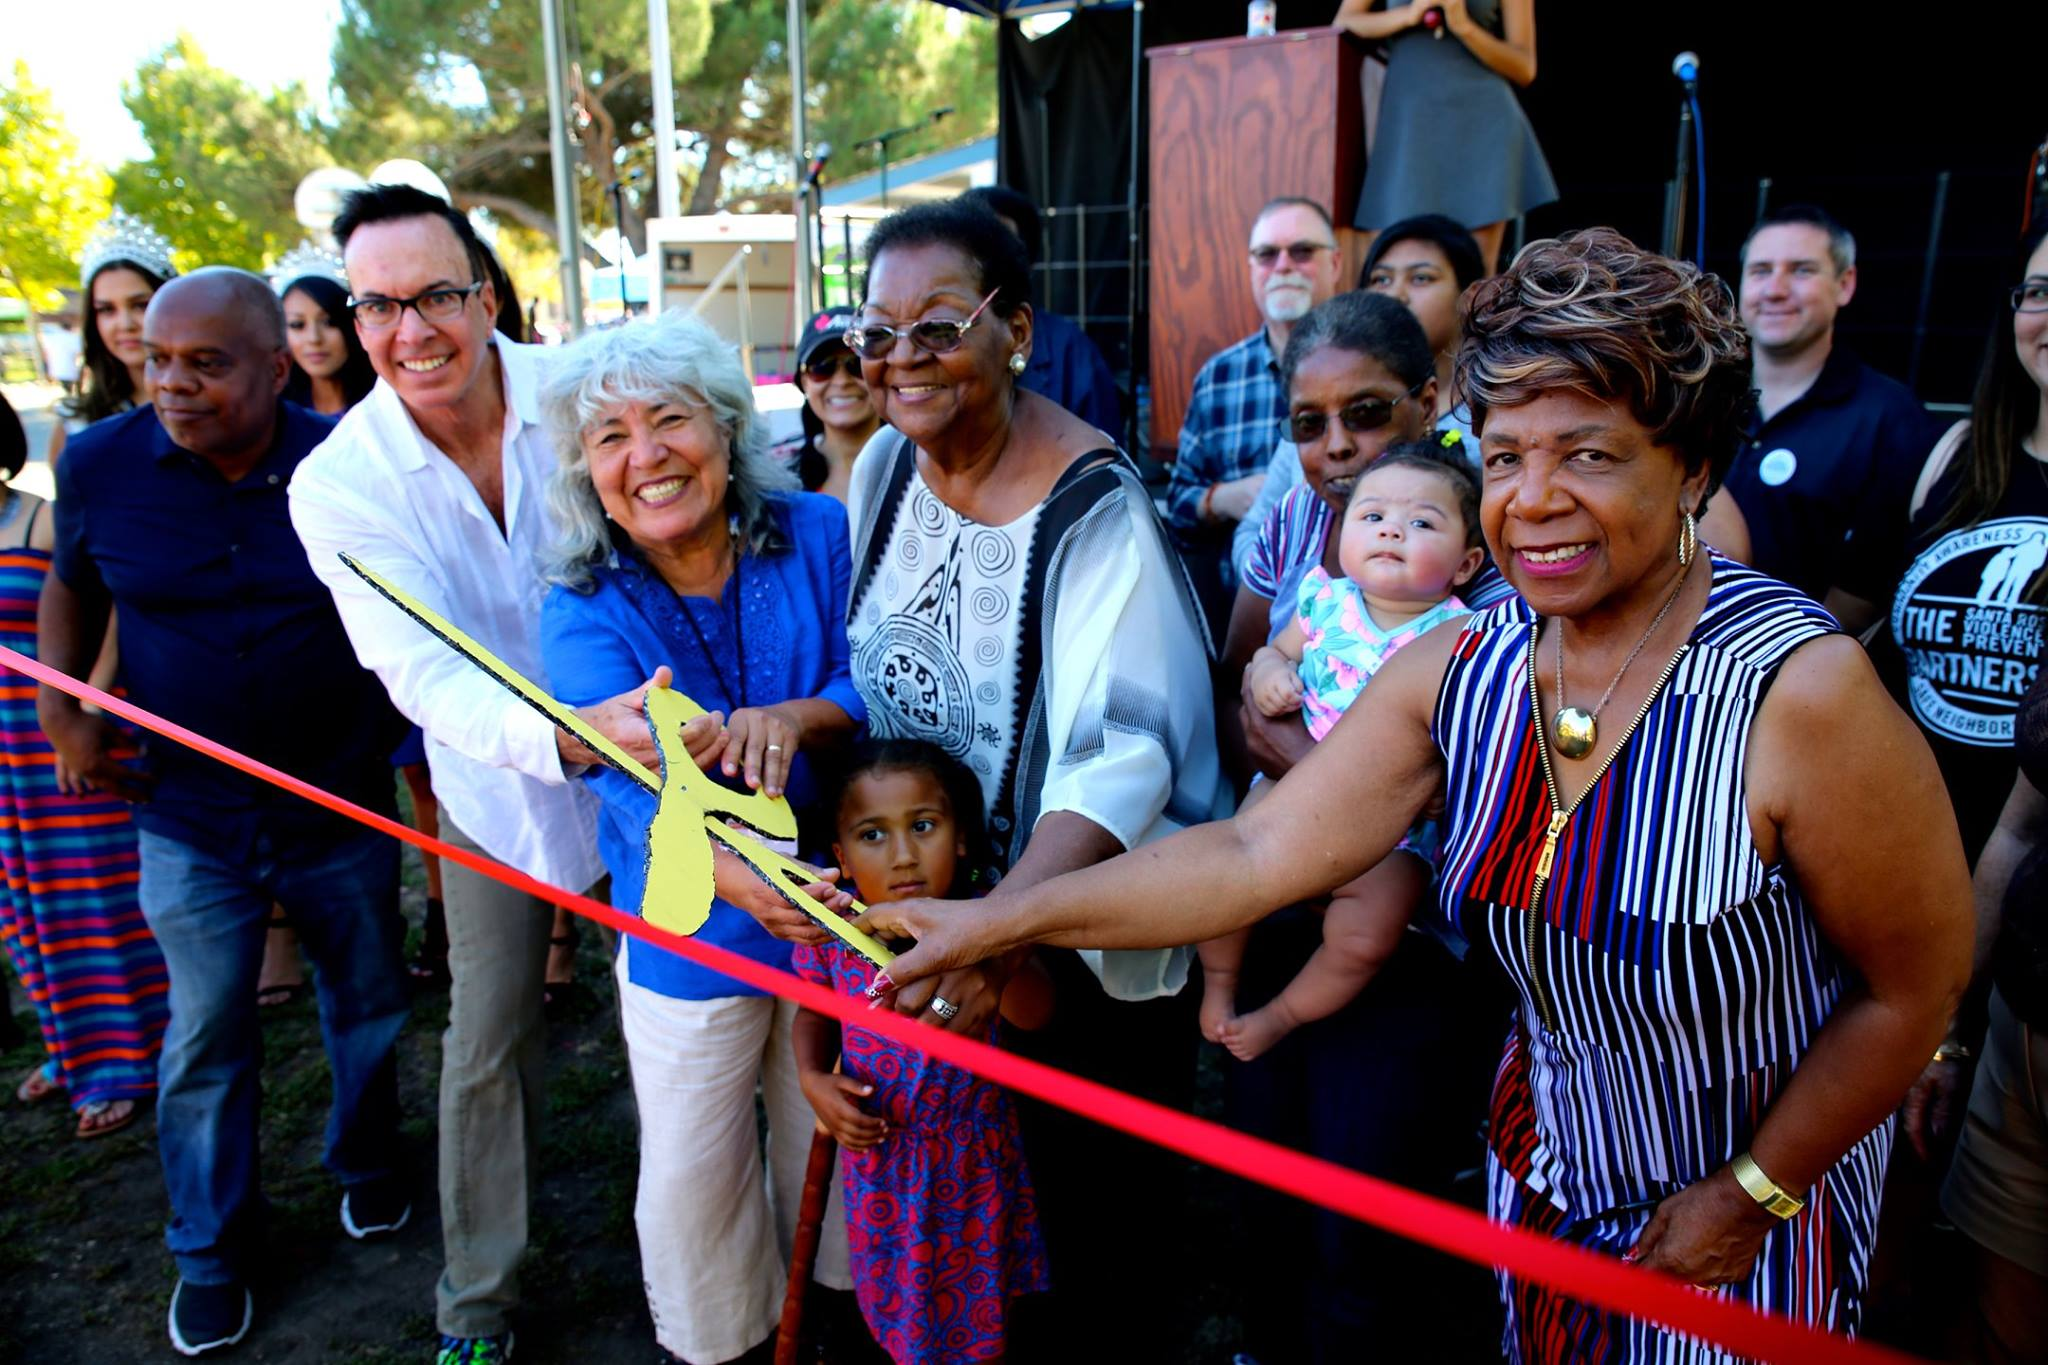 Group of diverse community members cutting ribbon at South Park Mural Ceremony